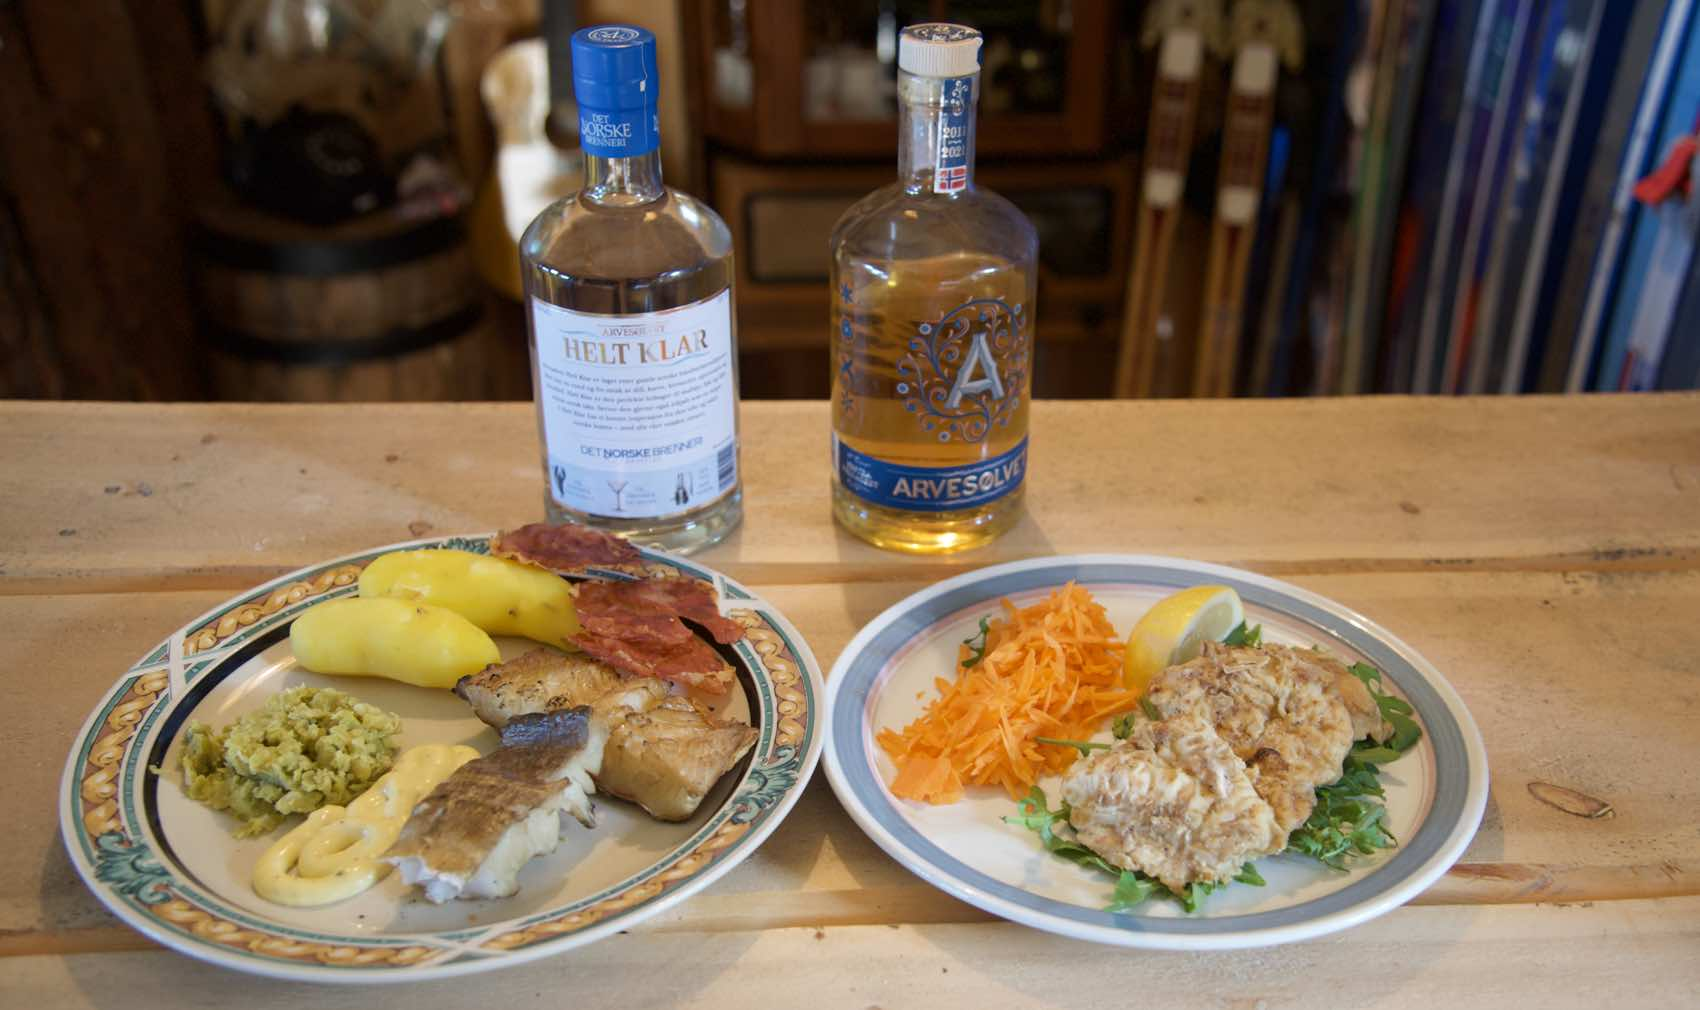 SPECIALITY: The locals up north in Norway love Boknacod, which is half-dried cod. Served with beer and Arvesølvet aquavit as the schnapps.